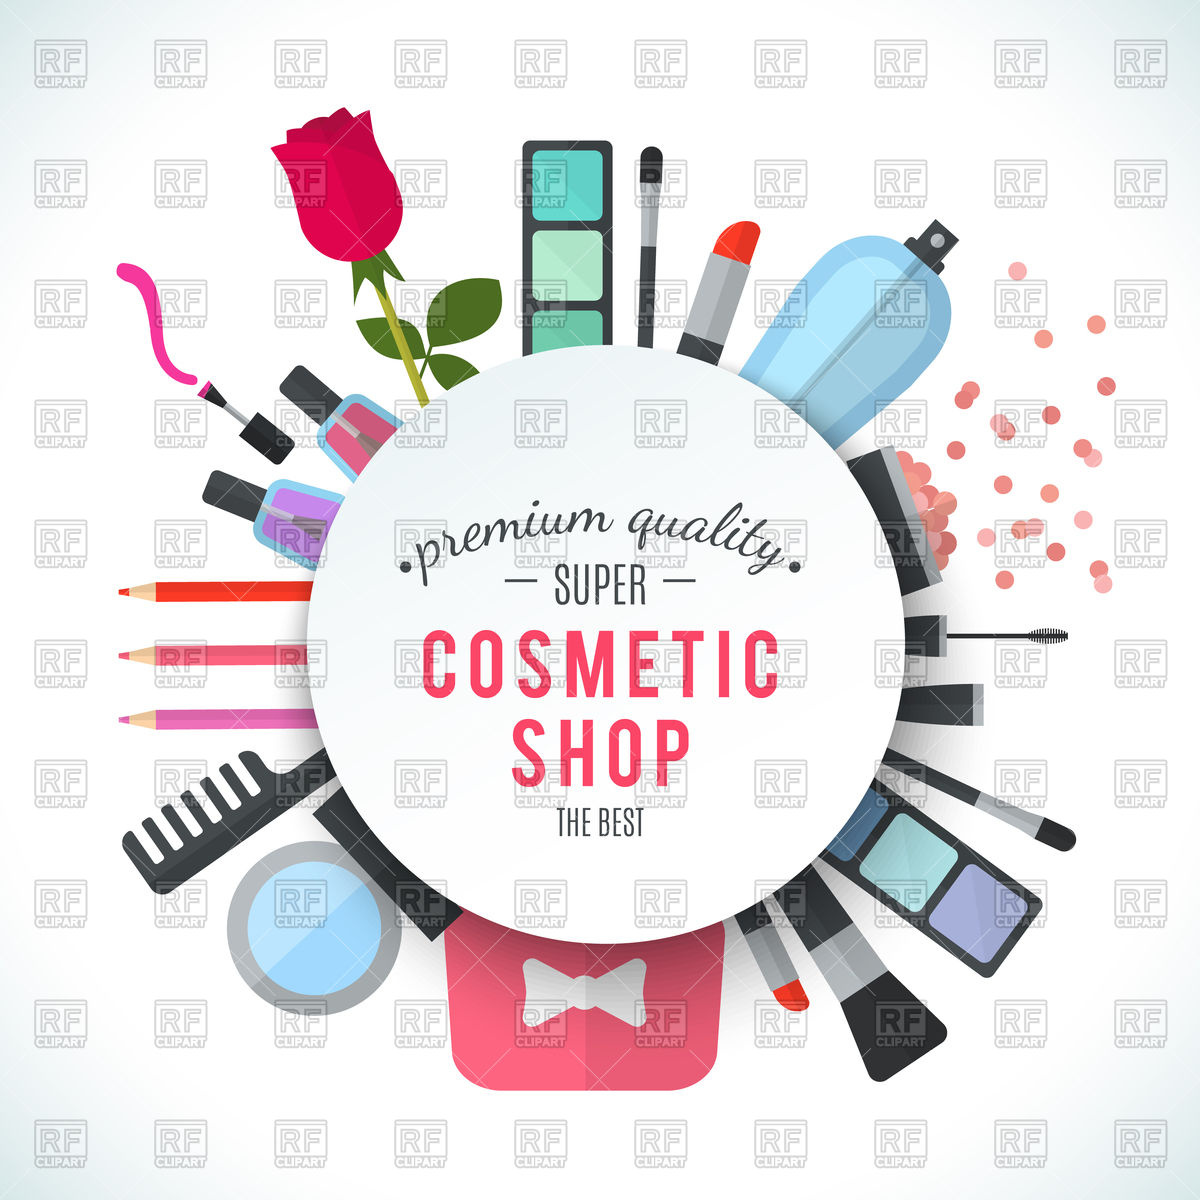 1200x1200 Professional Quality Cosmetics Shop Stylish Design Vector Image